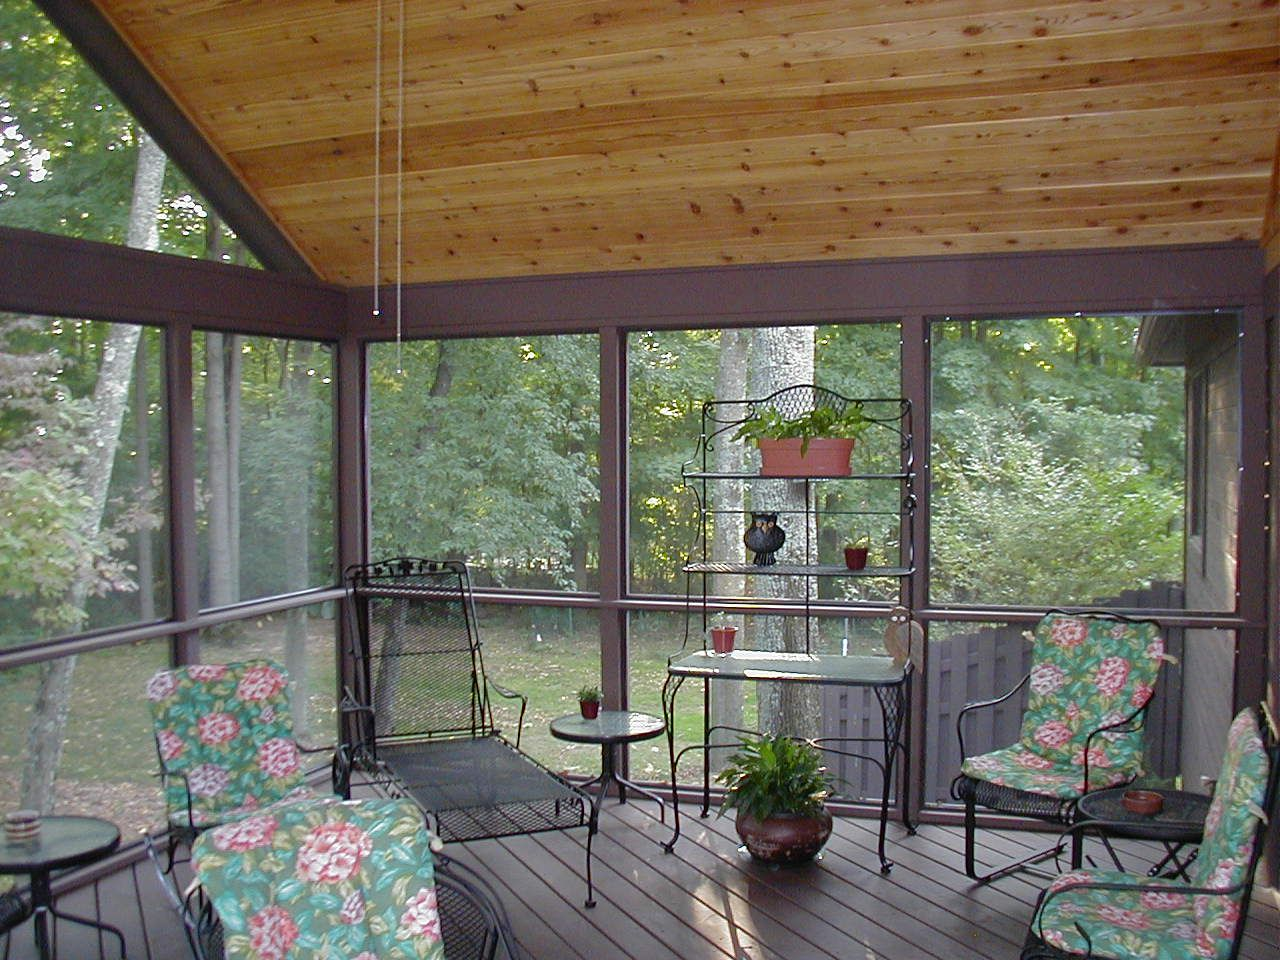 Screen Porch Flooring Options Screen porch flooring